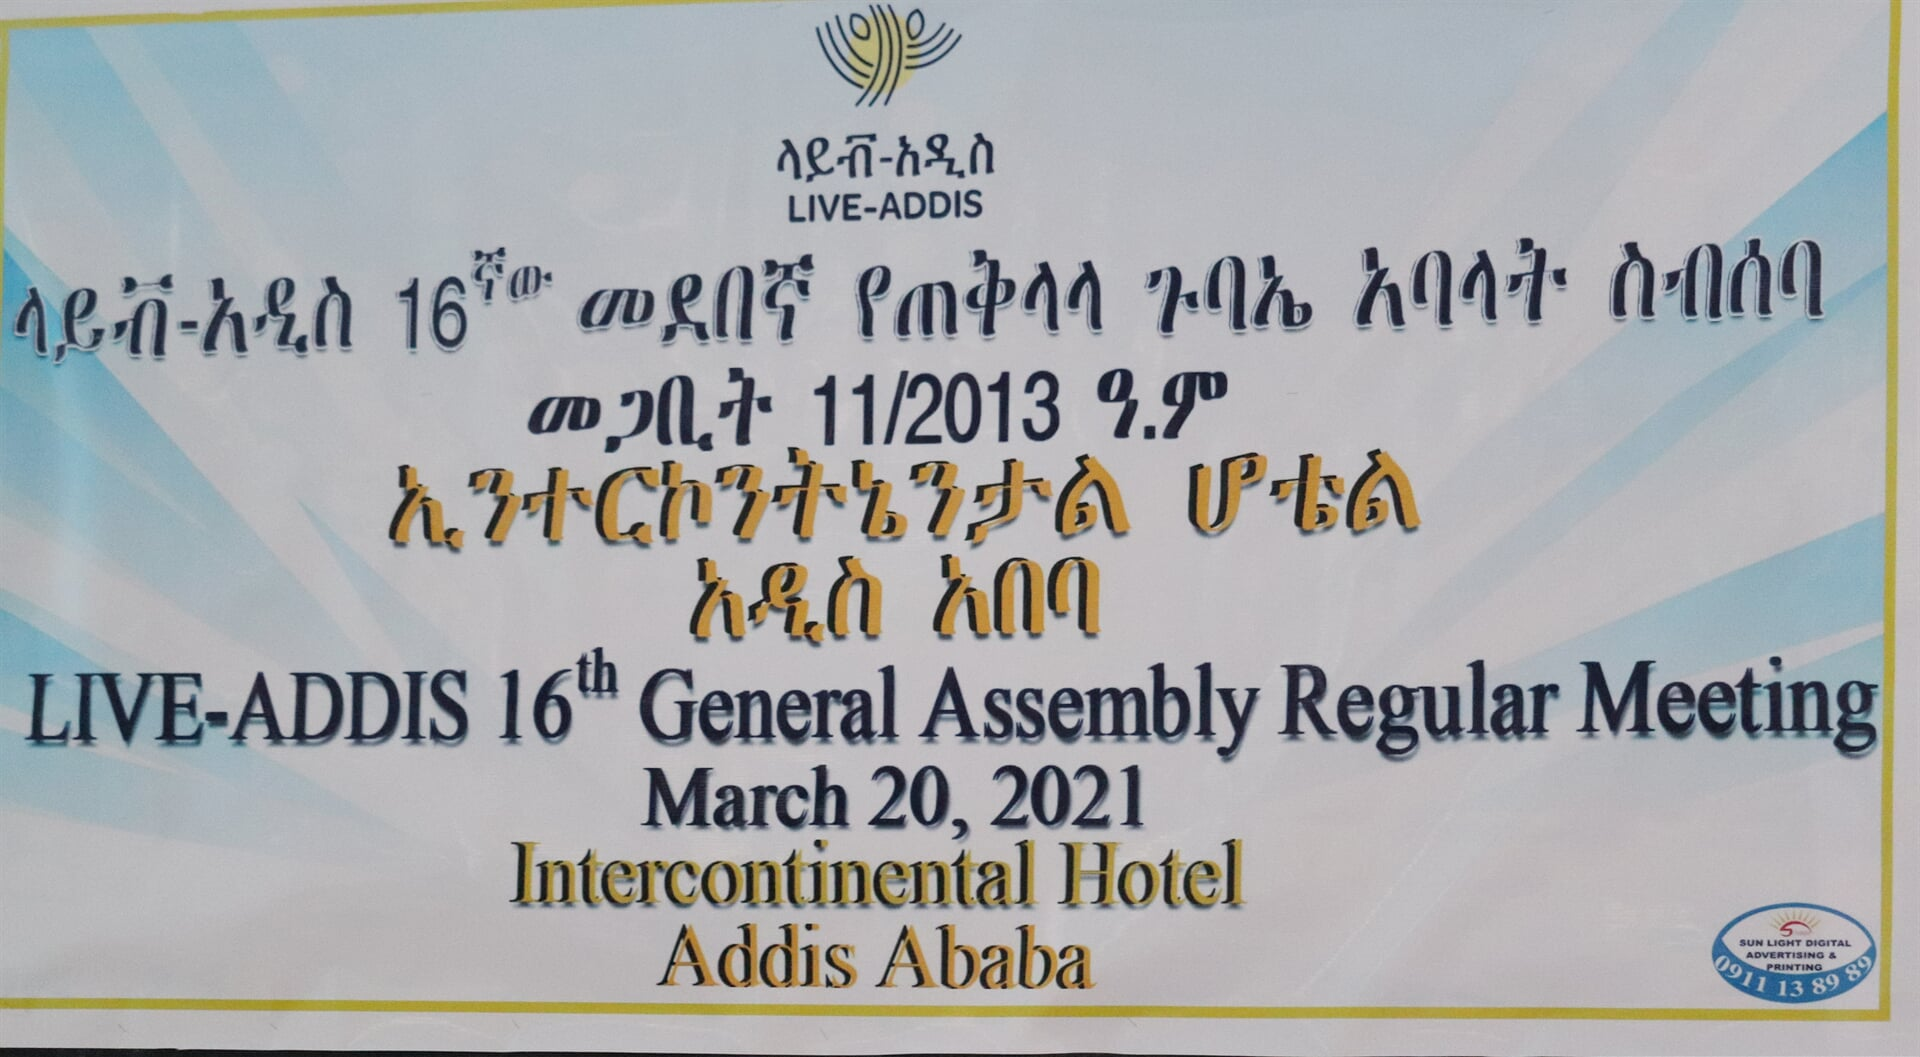 LIVE-ADDIS 16th General Assembly Meeting